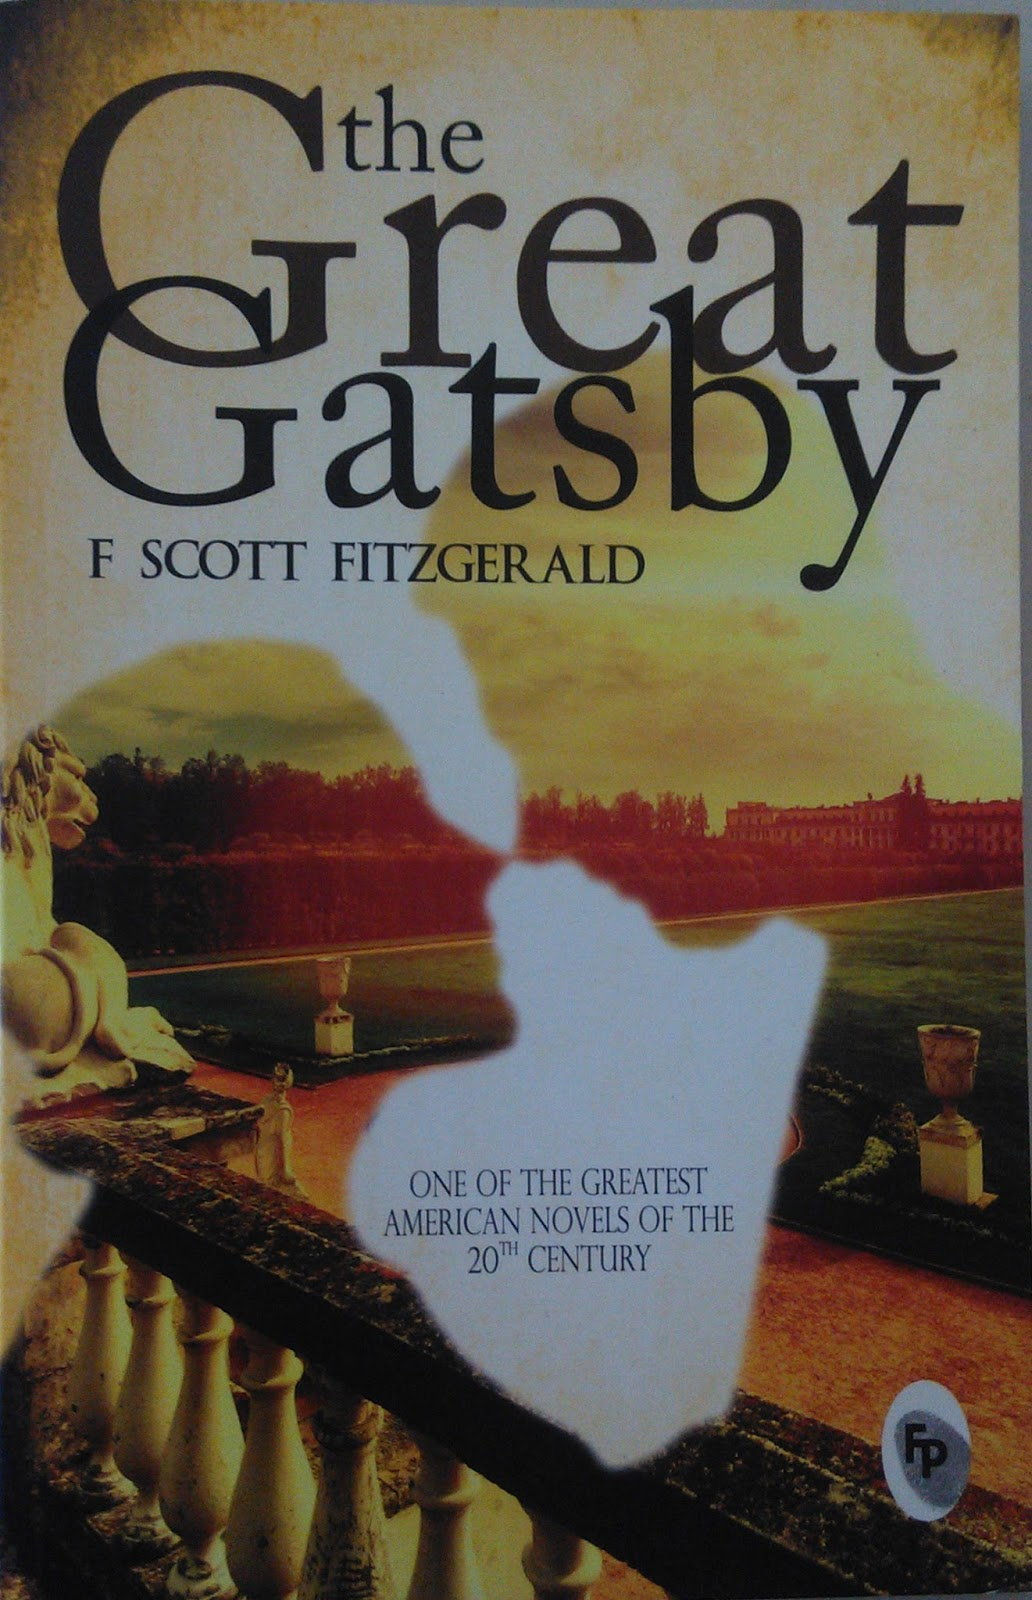 How Has Fitzgerald Presented The Character Of Daisy In 'The Great Gatsby' Essay